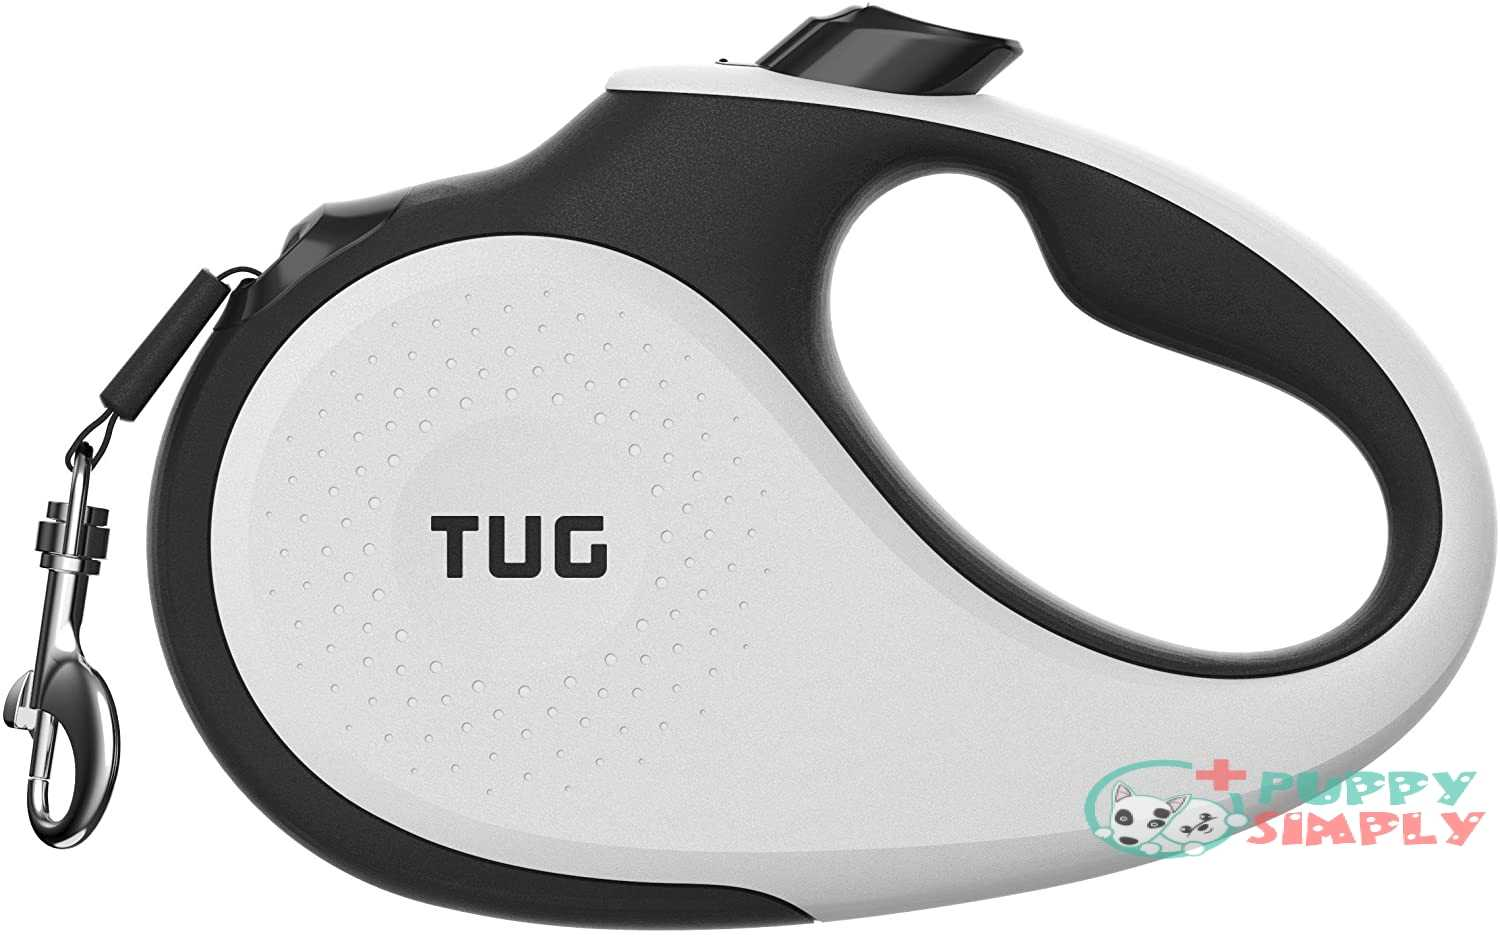 Tug Patented 360 Retractable Dog Leash